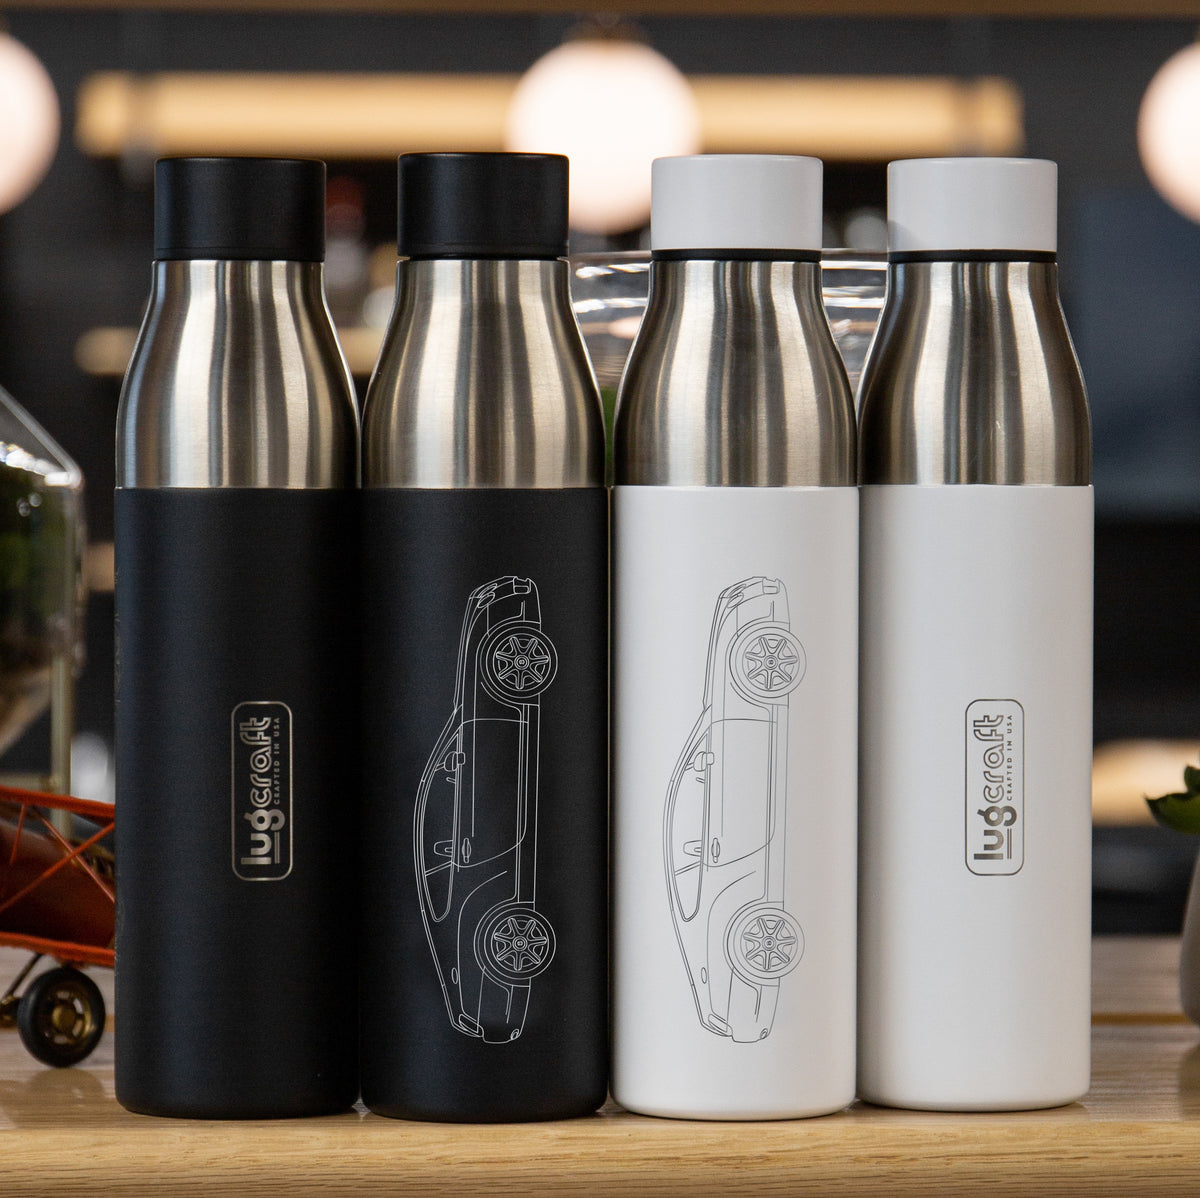 Bentley Continental GT Insulated Stainless Steel Water Bottle - 21 oz